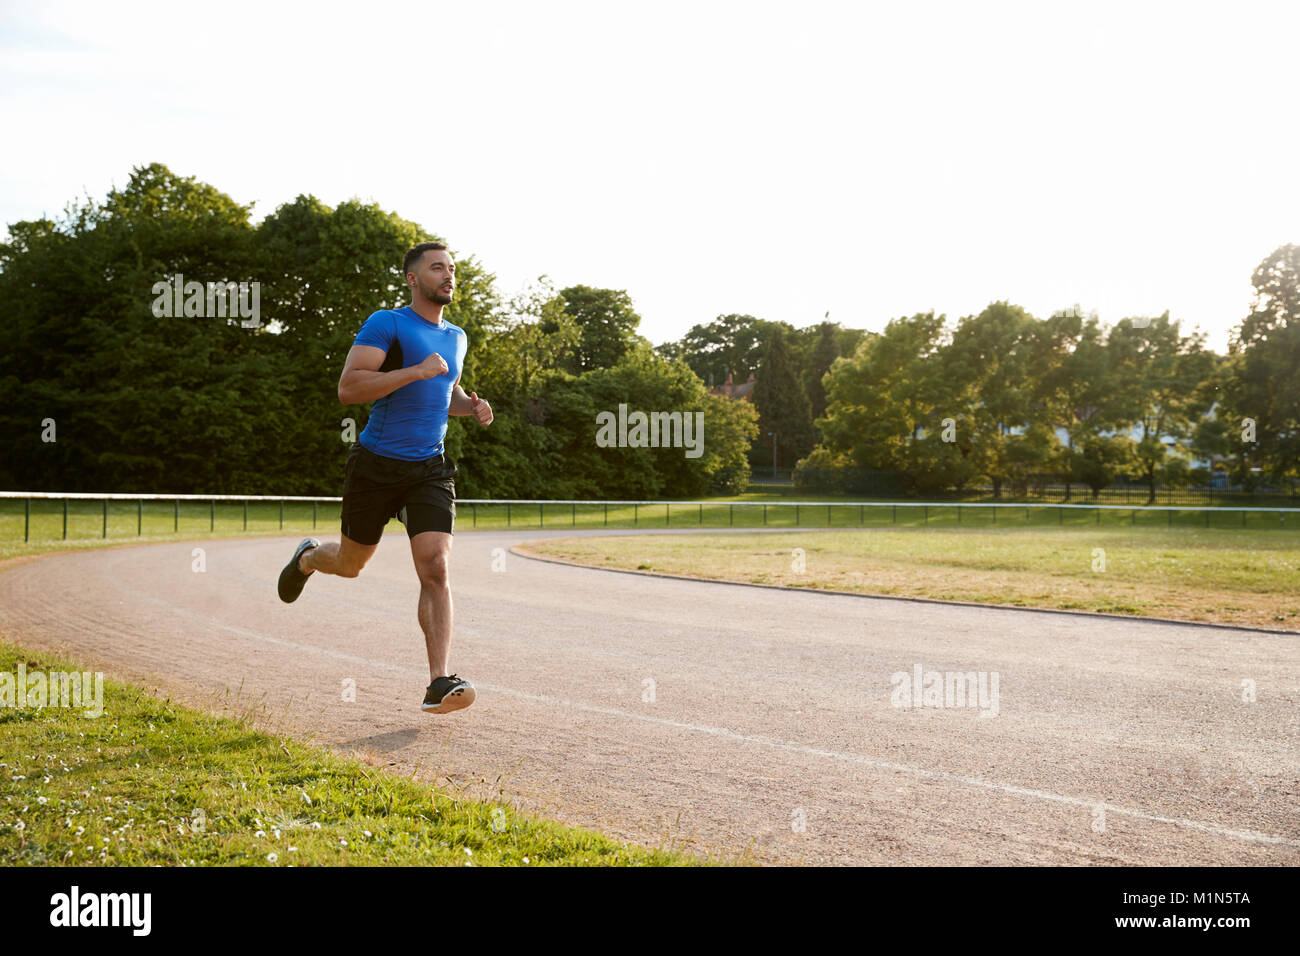 Young male athlete running at a track, full length - Stock Image